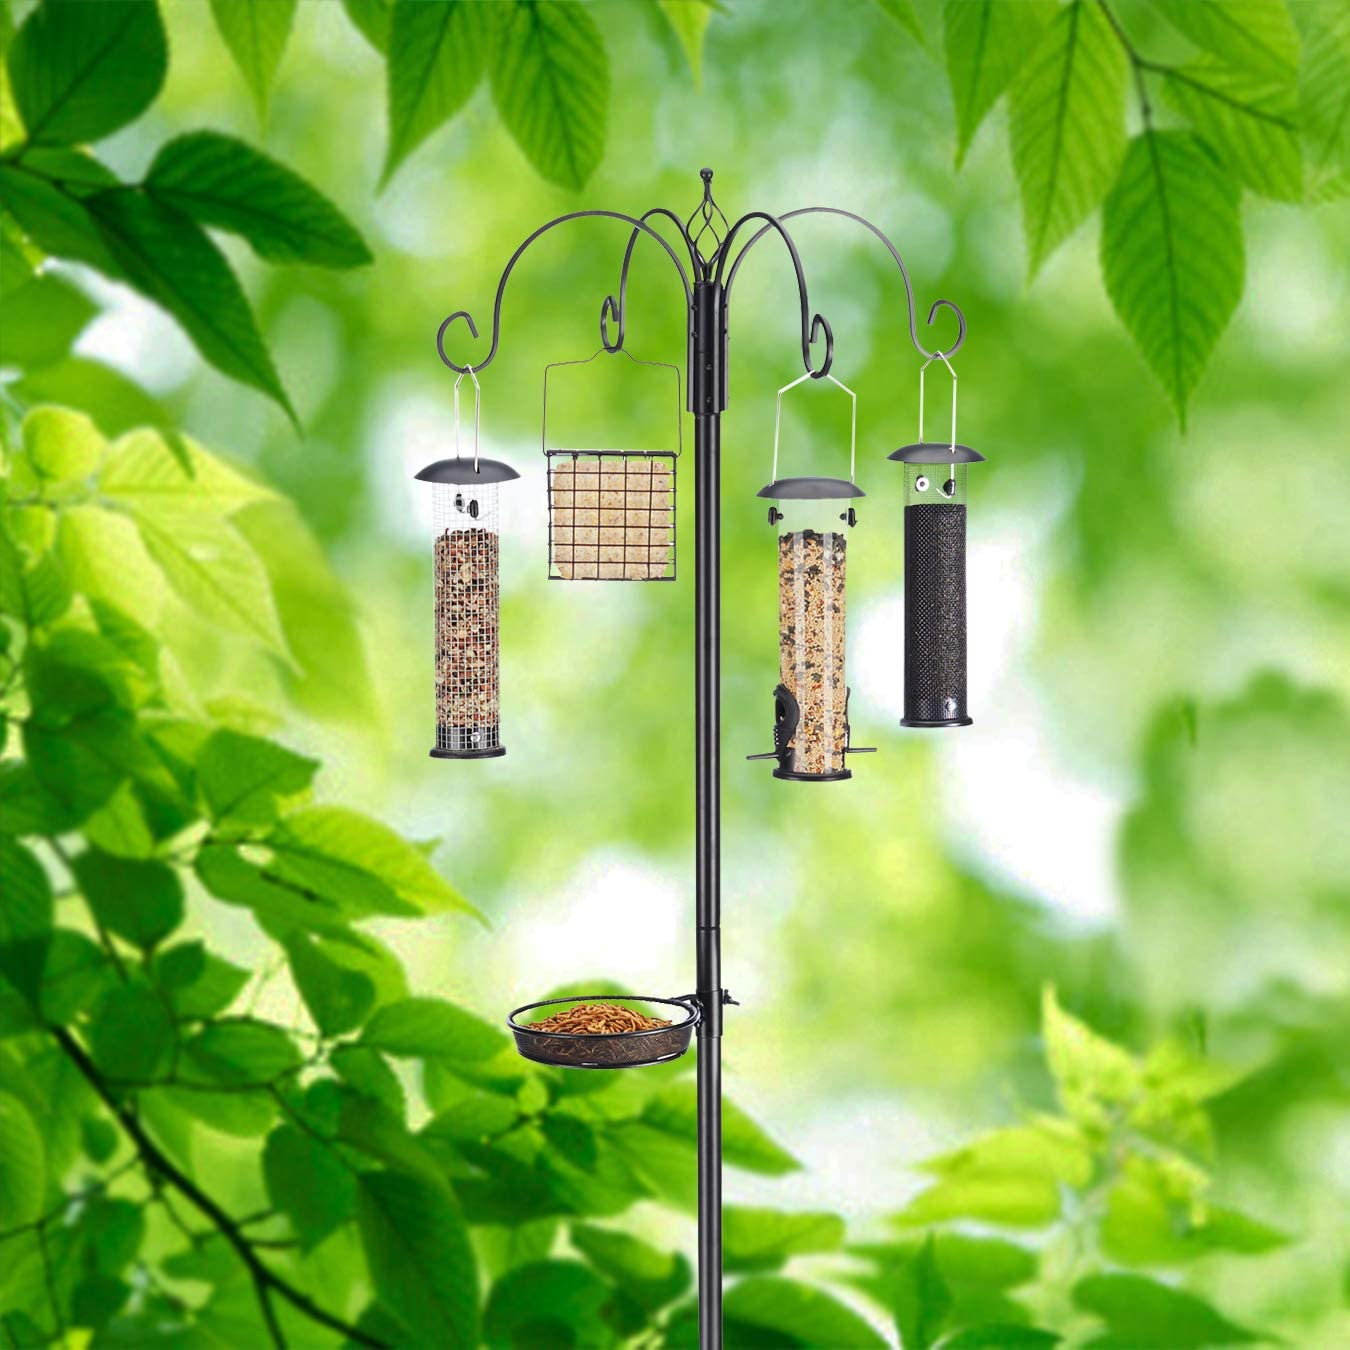 North States Bird 1862 Ultimate Station Birdfeeder, Black